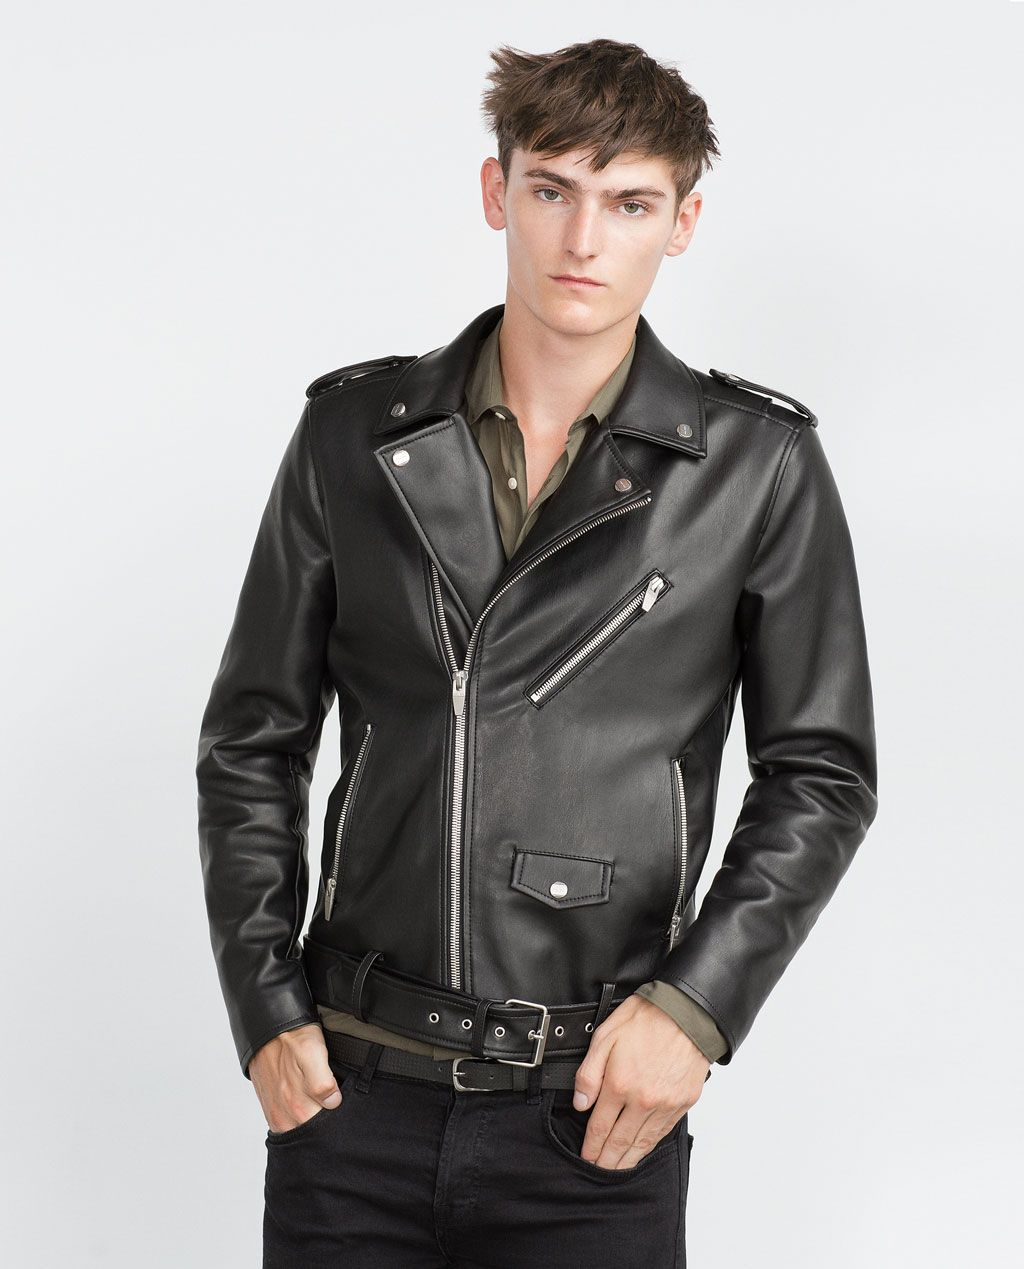 ef05c0d0 ZARA - MAN - BIKER JACKET | Stuff to Buy | Zara biker jacket ...